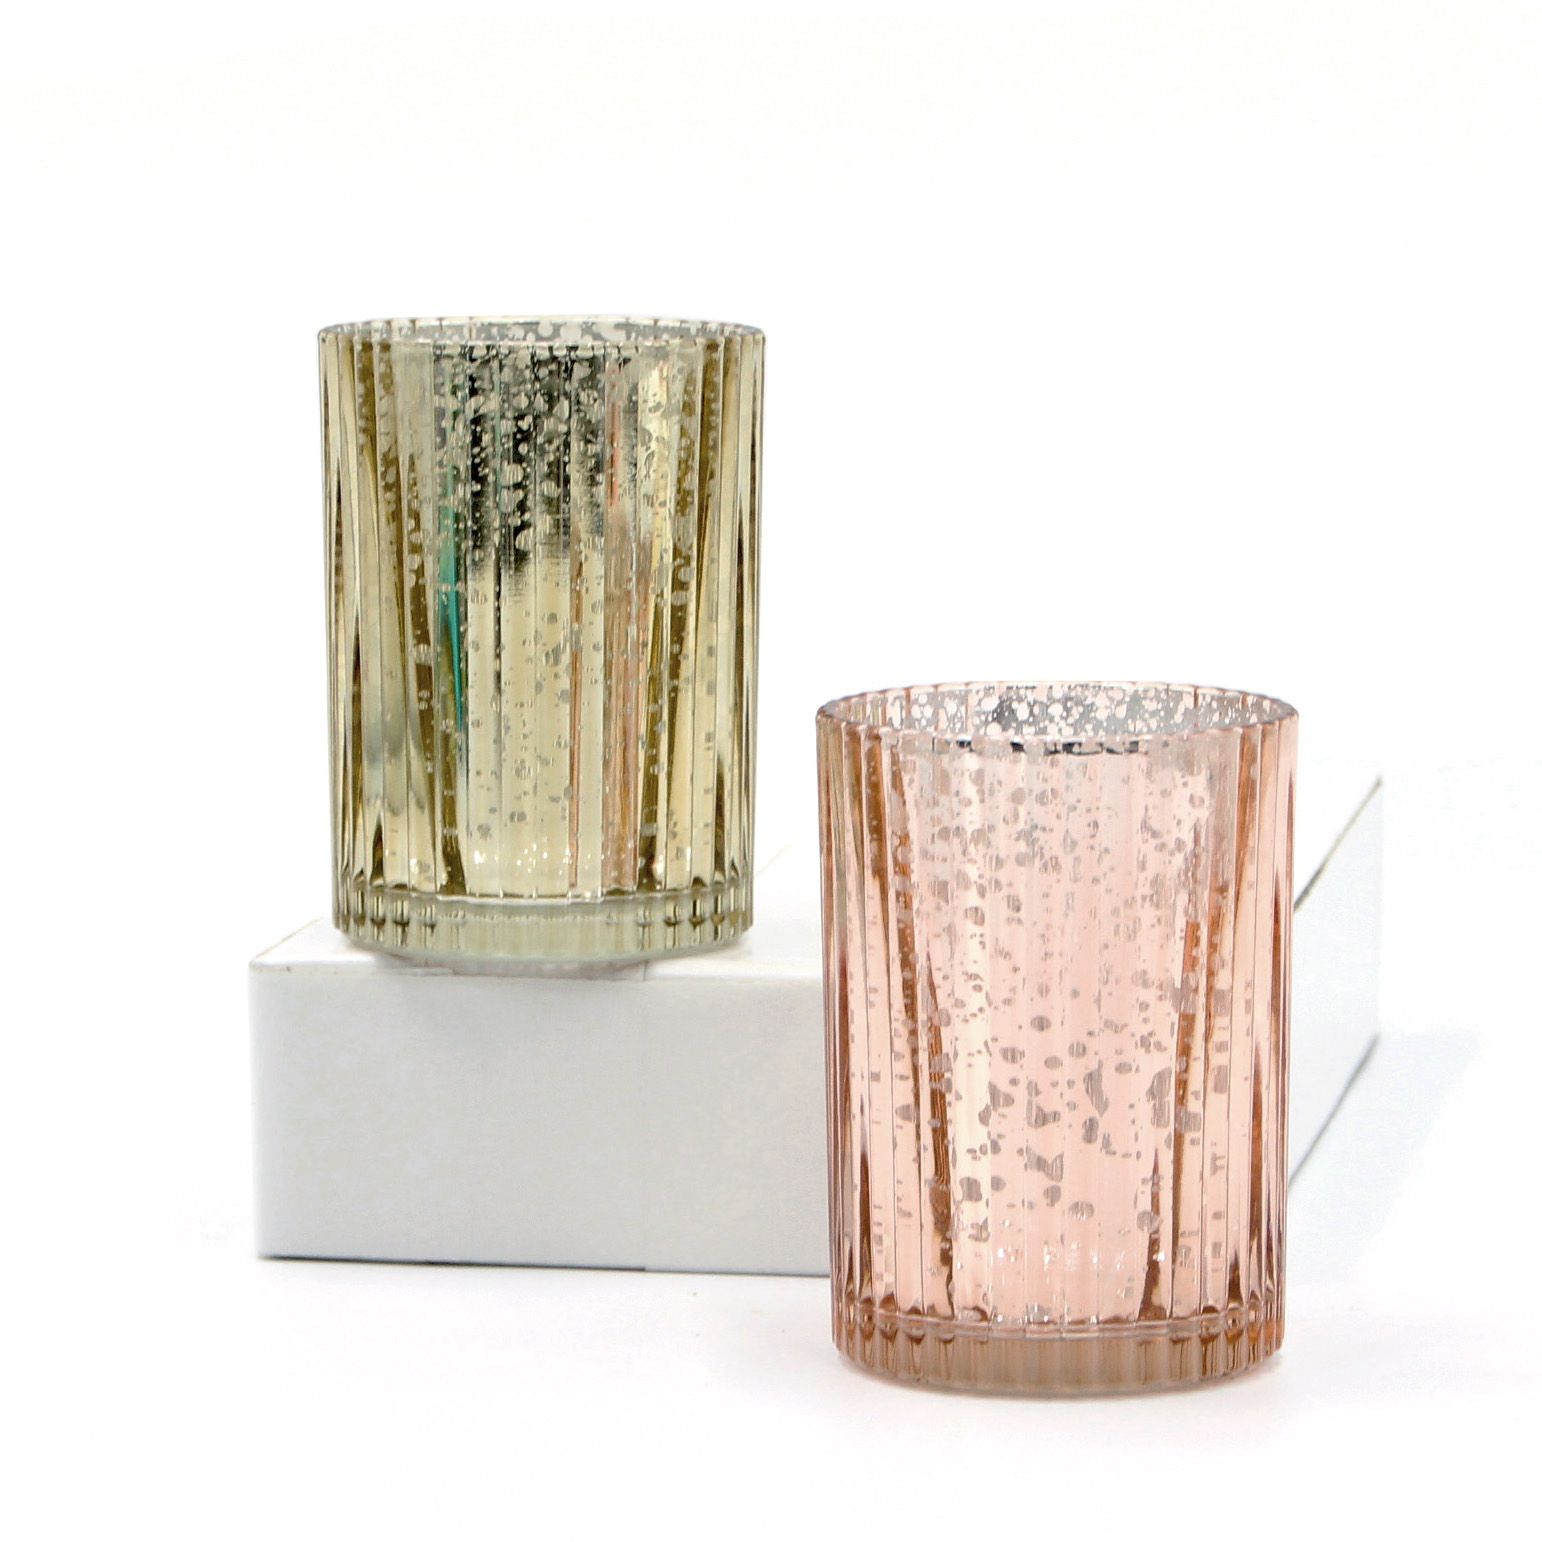 Electroplated Rose Gold Glass Candle Holder for Home Decor